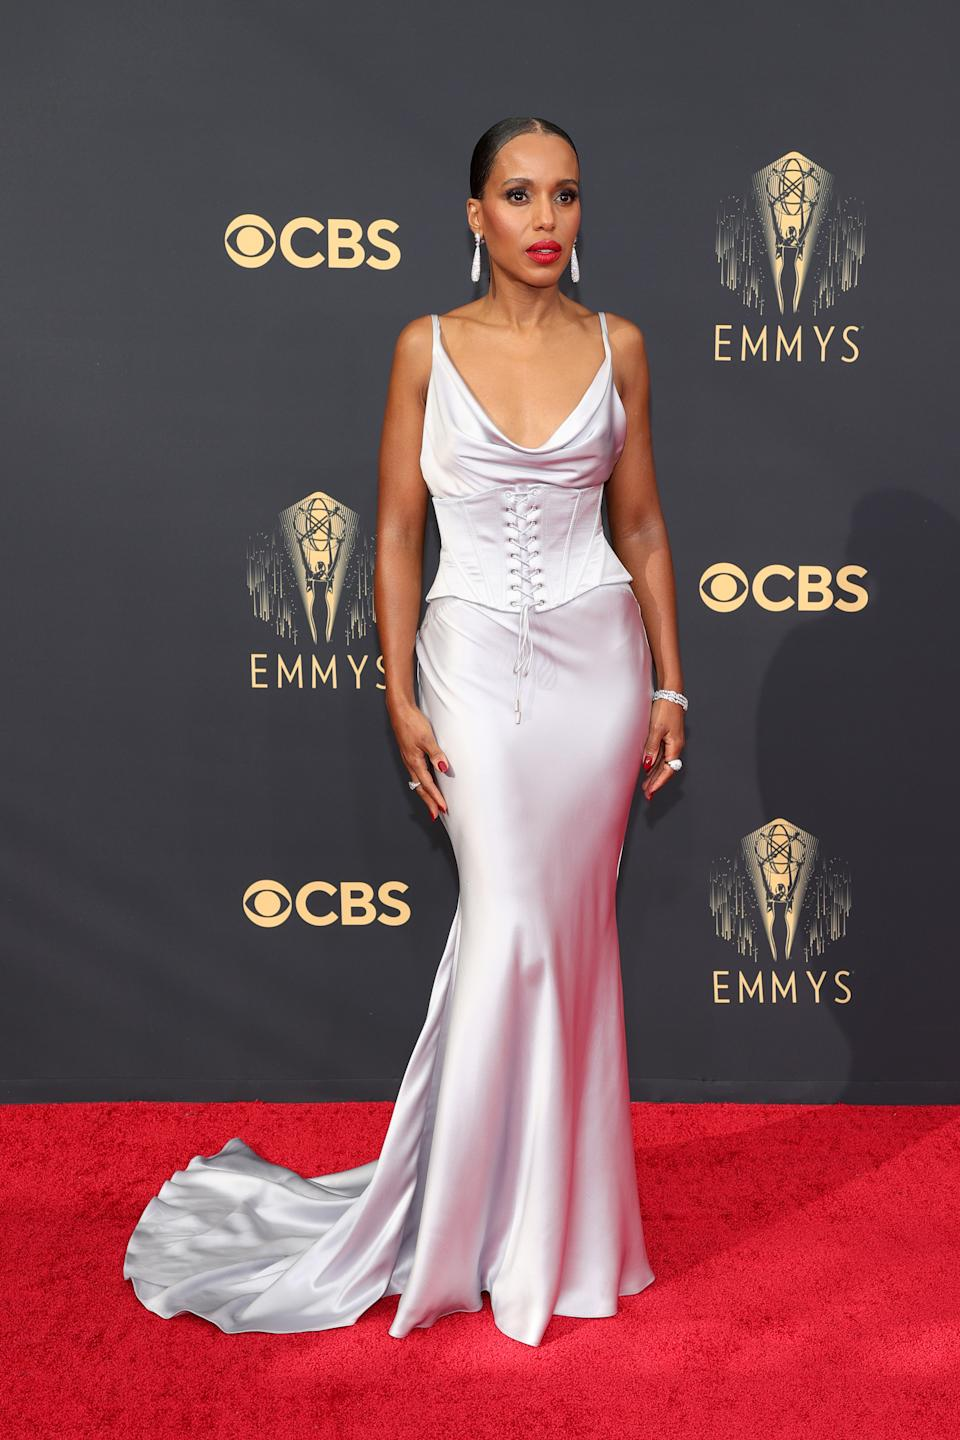 Kerry Washington wears a silver cowl-neck dress at the 73rd Primetime Emmy Awards at L.A. LIVE on September 19, 2021 in Los Angeles, California. (Photo by Rich Fury/Getty Images)